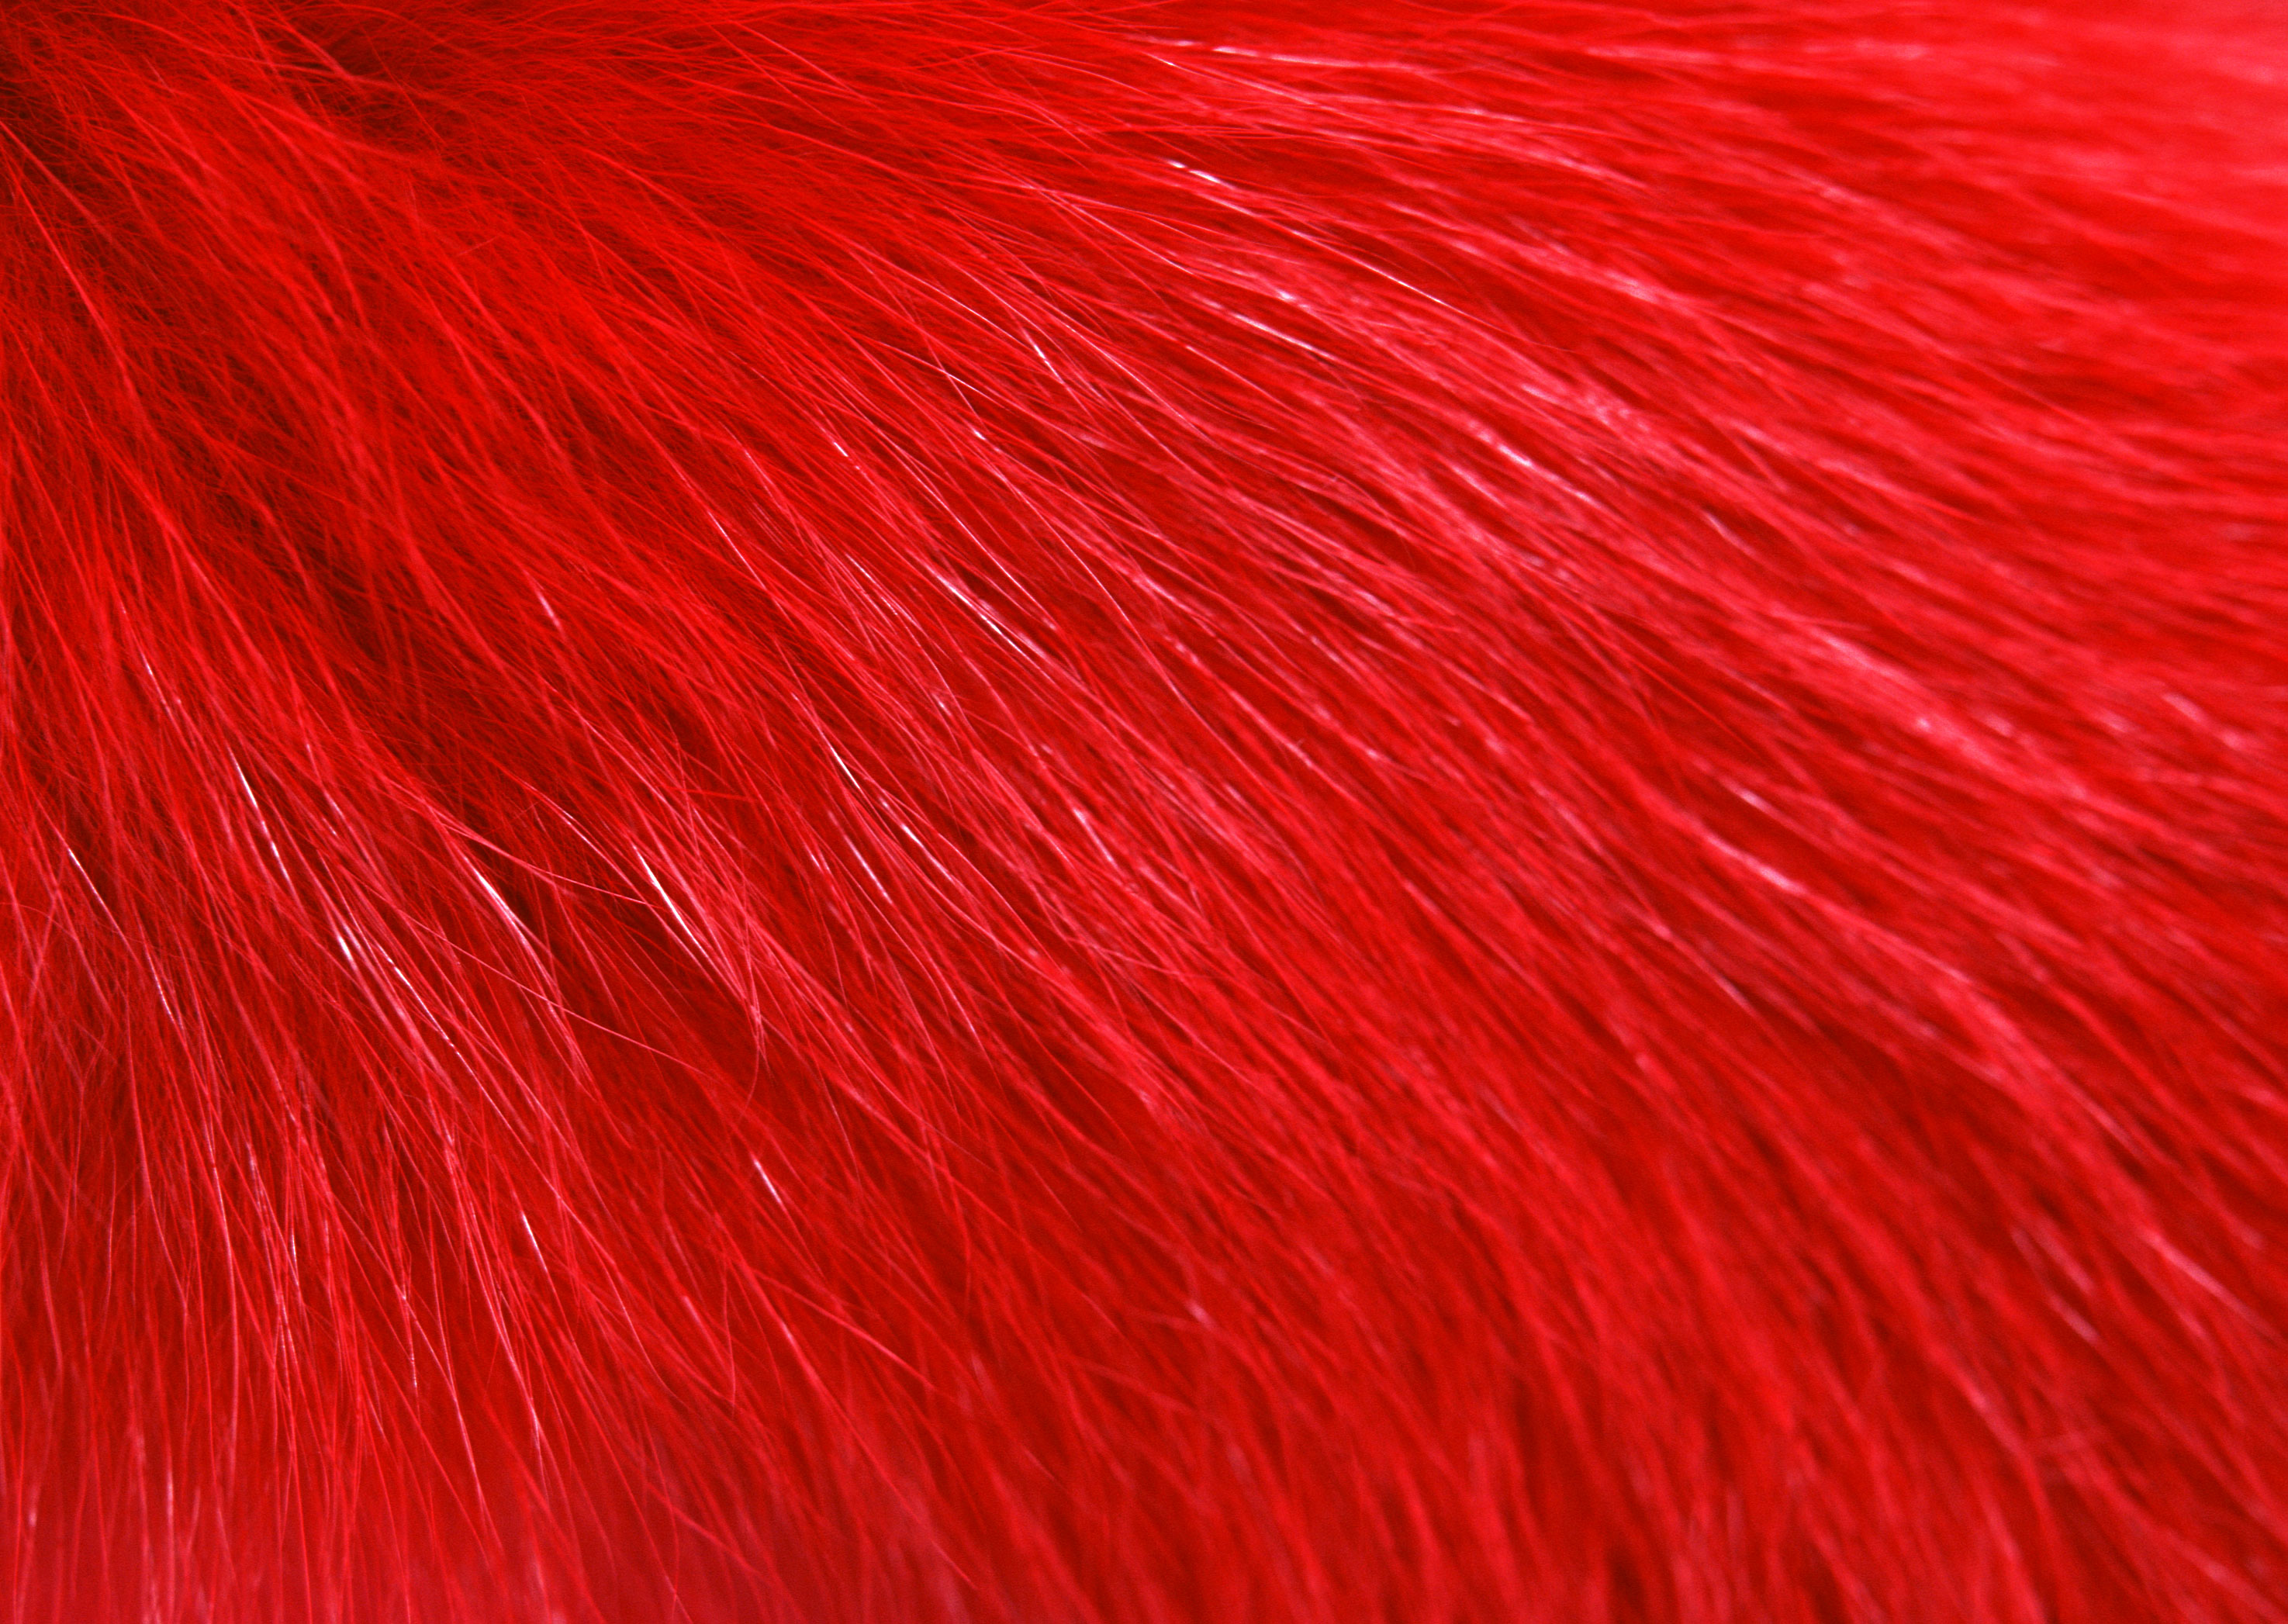 red animal texture, skin animal texture, background